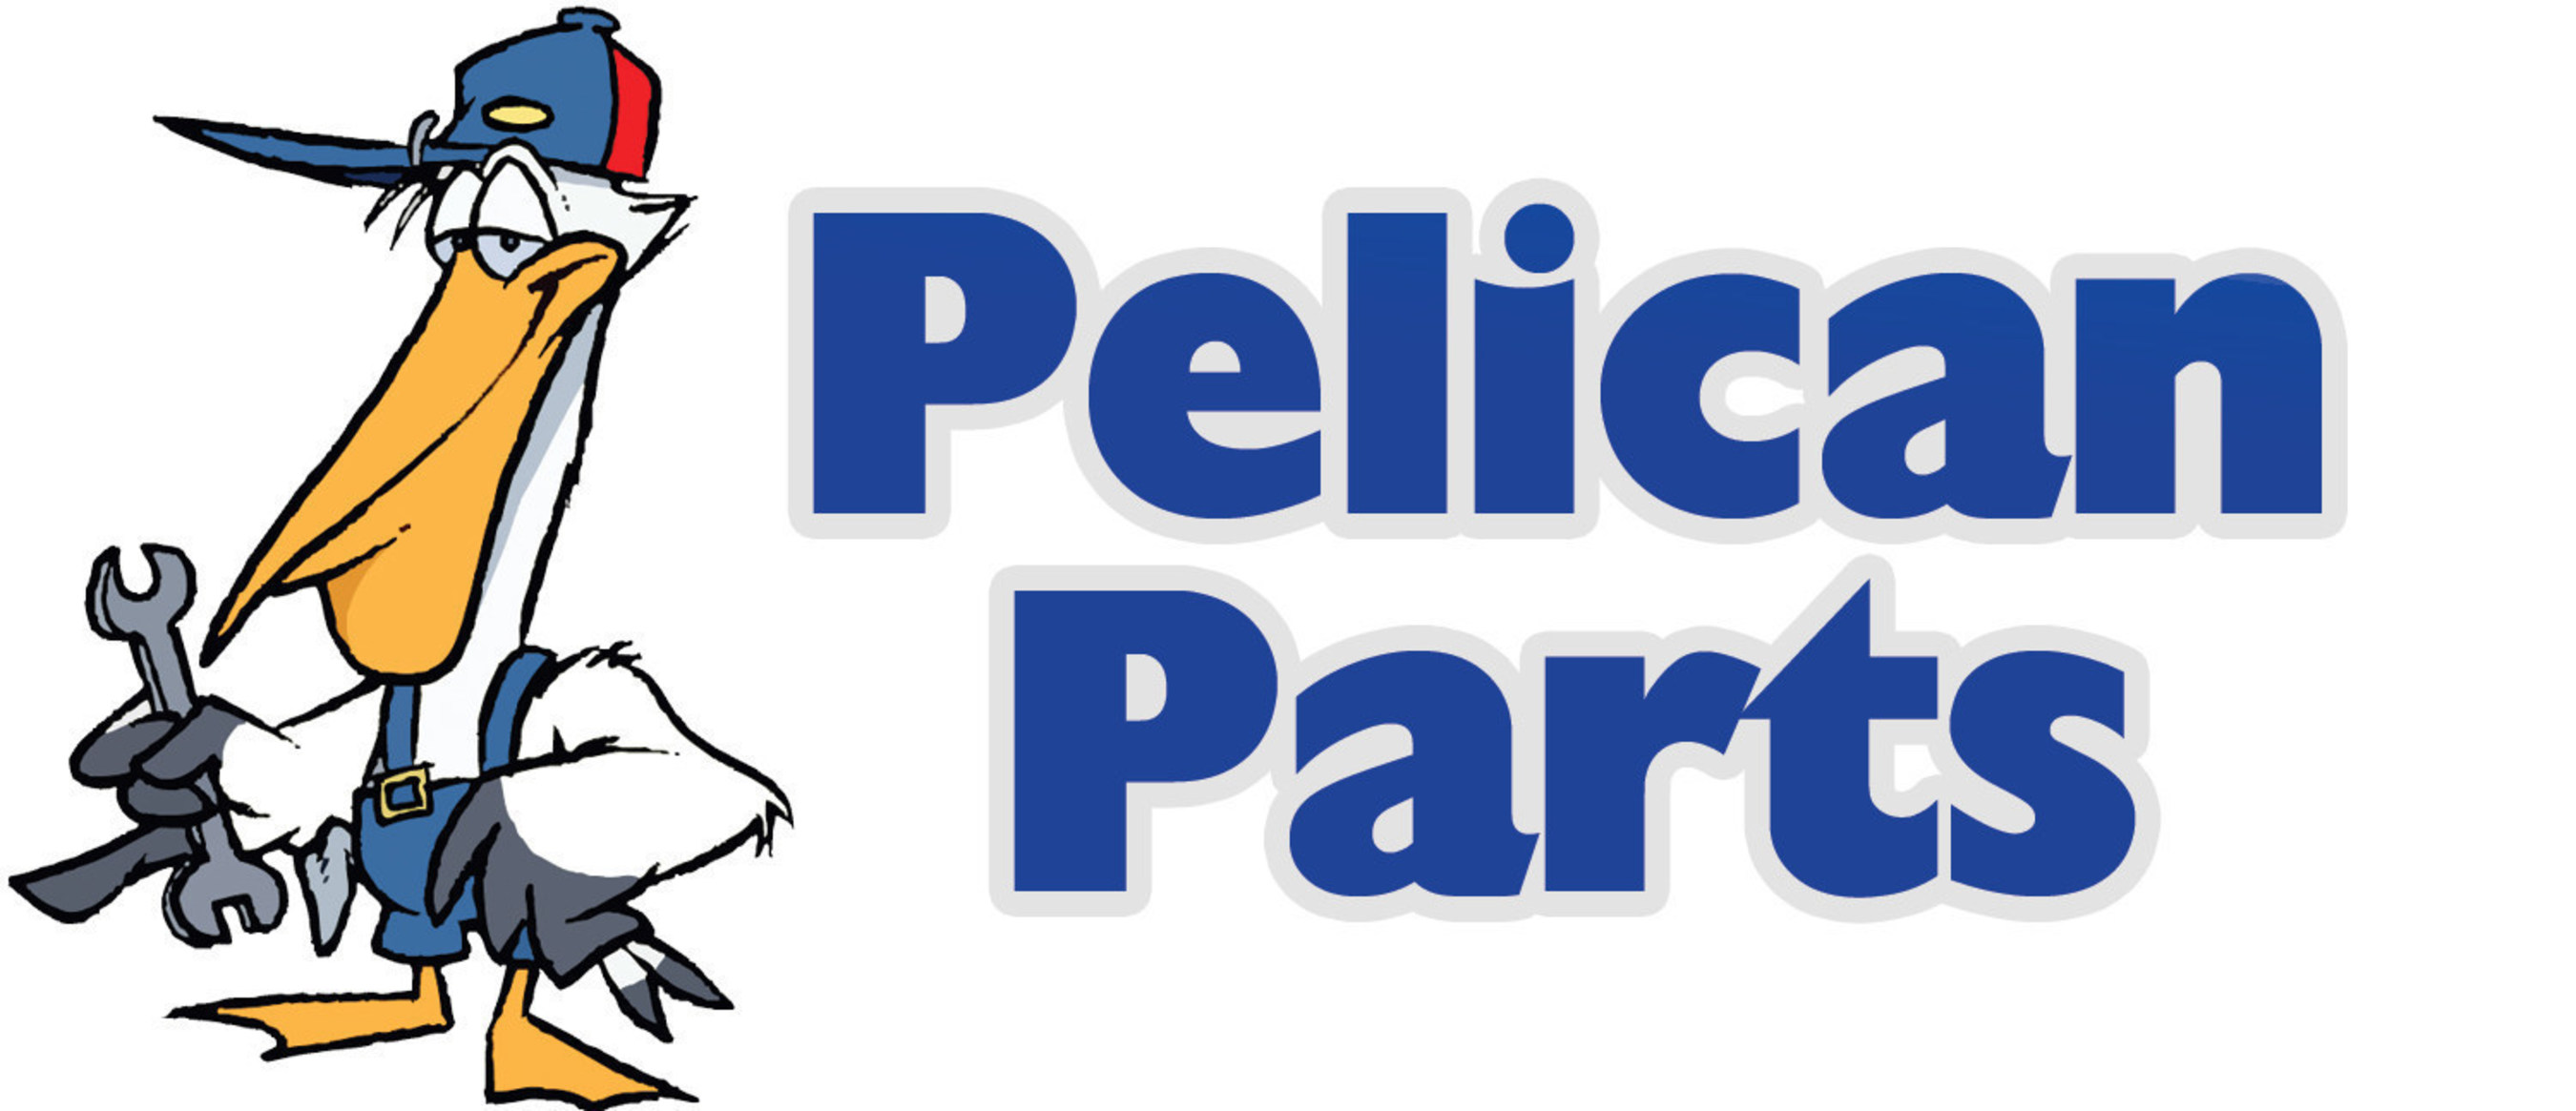 Come visit www.PelicanParts.com for everything you need to DIY.